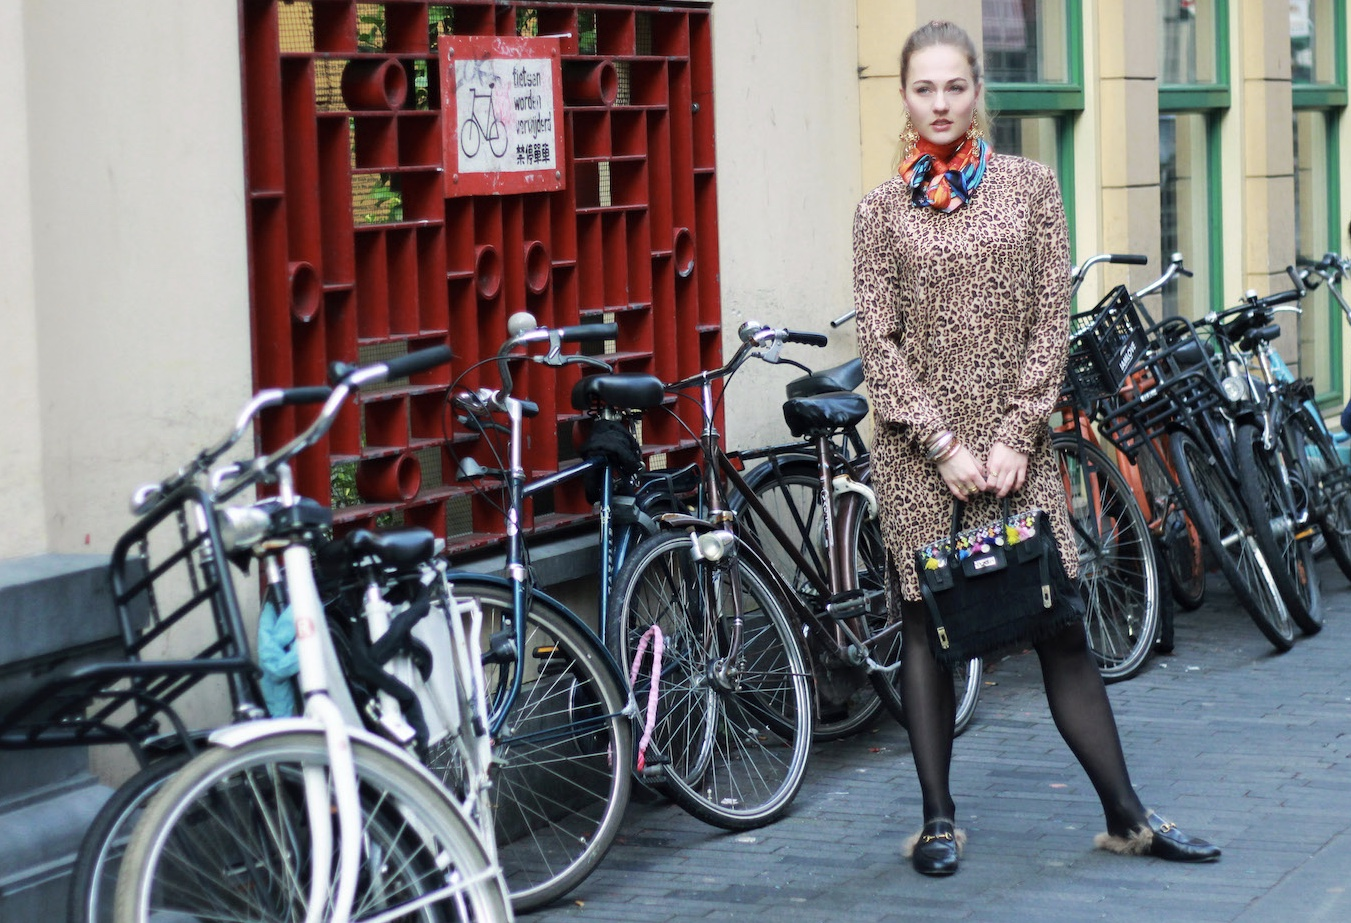 floortjeloves, 6 things to do for your blog today, to do, leopard, leopard print, leopard dress, saint tropez, wolford, rafnik, rafnik italy, demonTZ, silk scarf, gucci, gucci shoes, gucci slippers, celine, celine marta, celine sunglasses